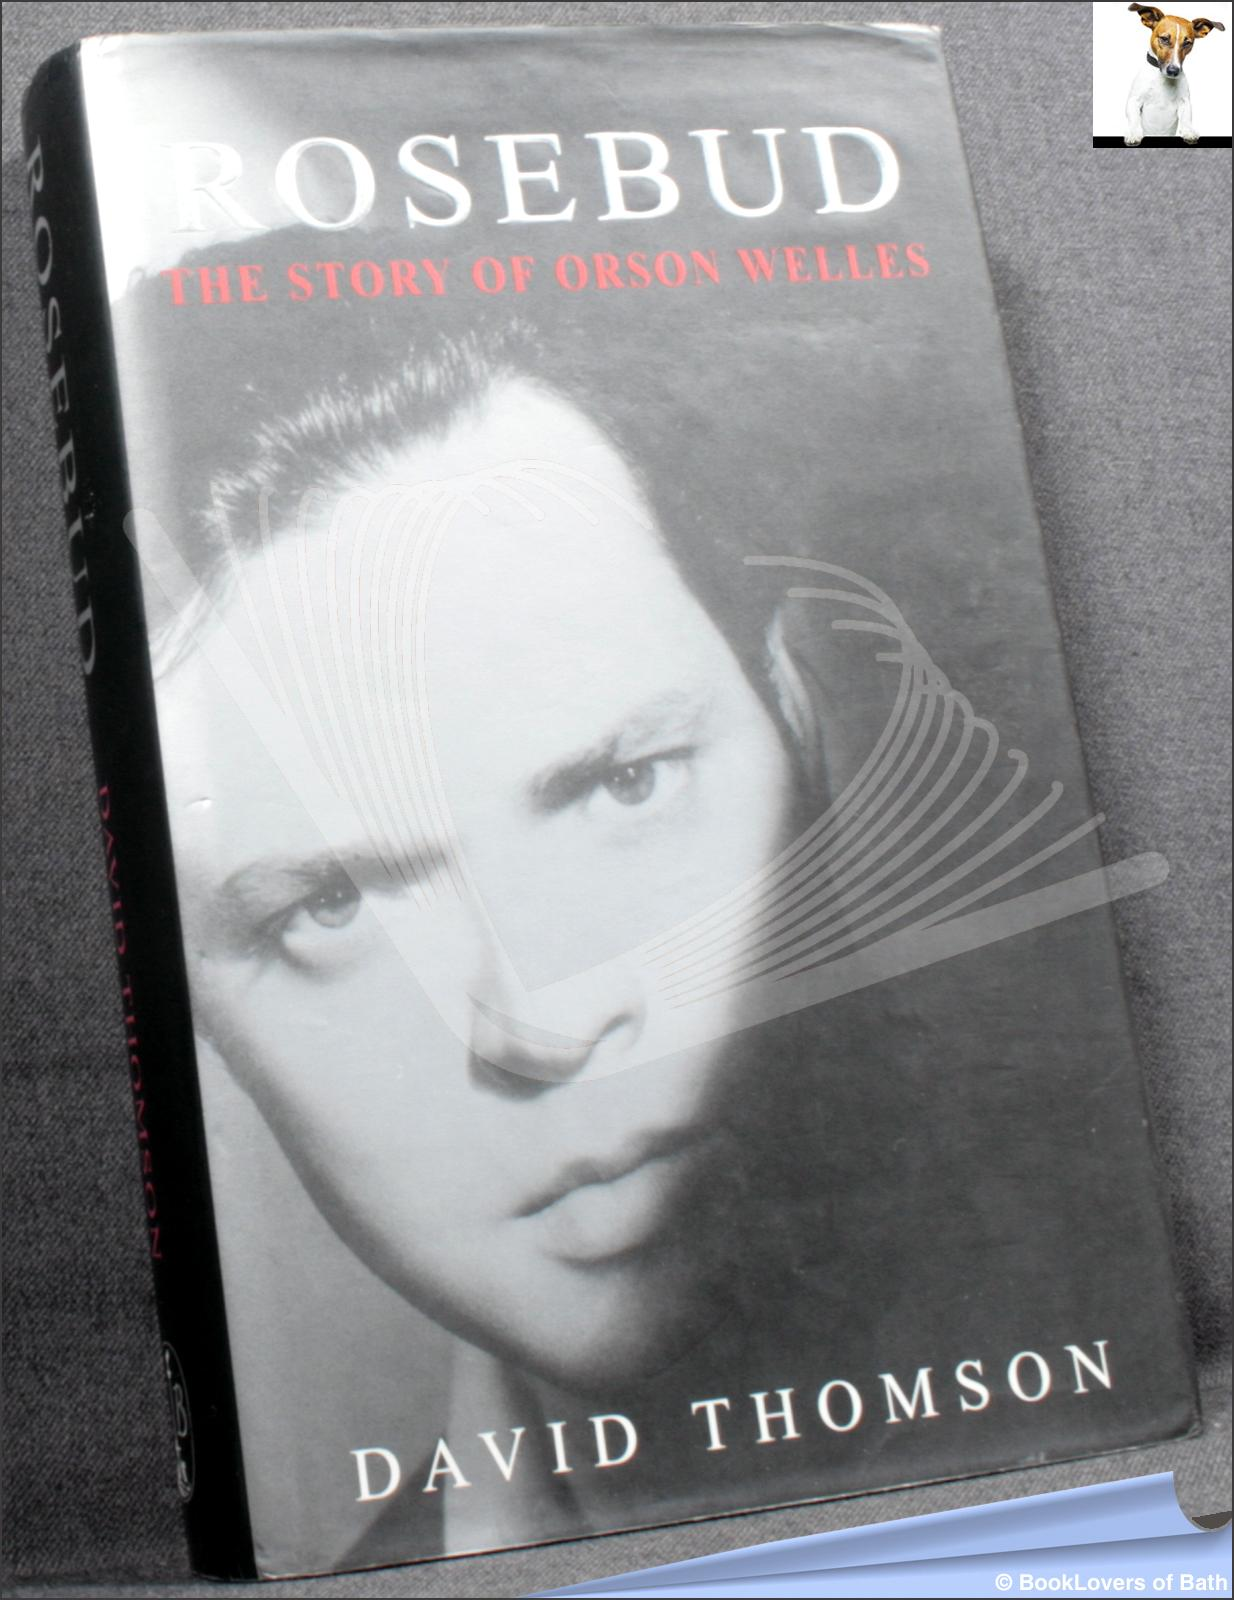 Rosebud: The Story Of Orson Welles - David Thomson